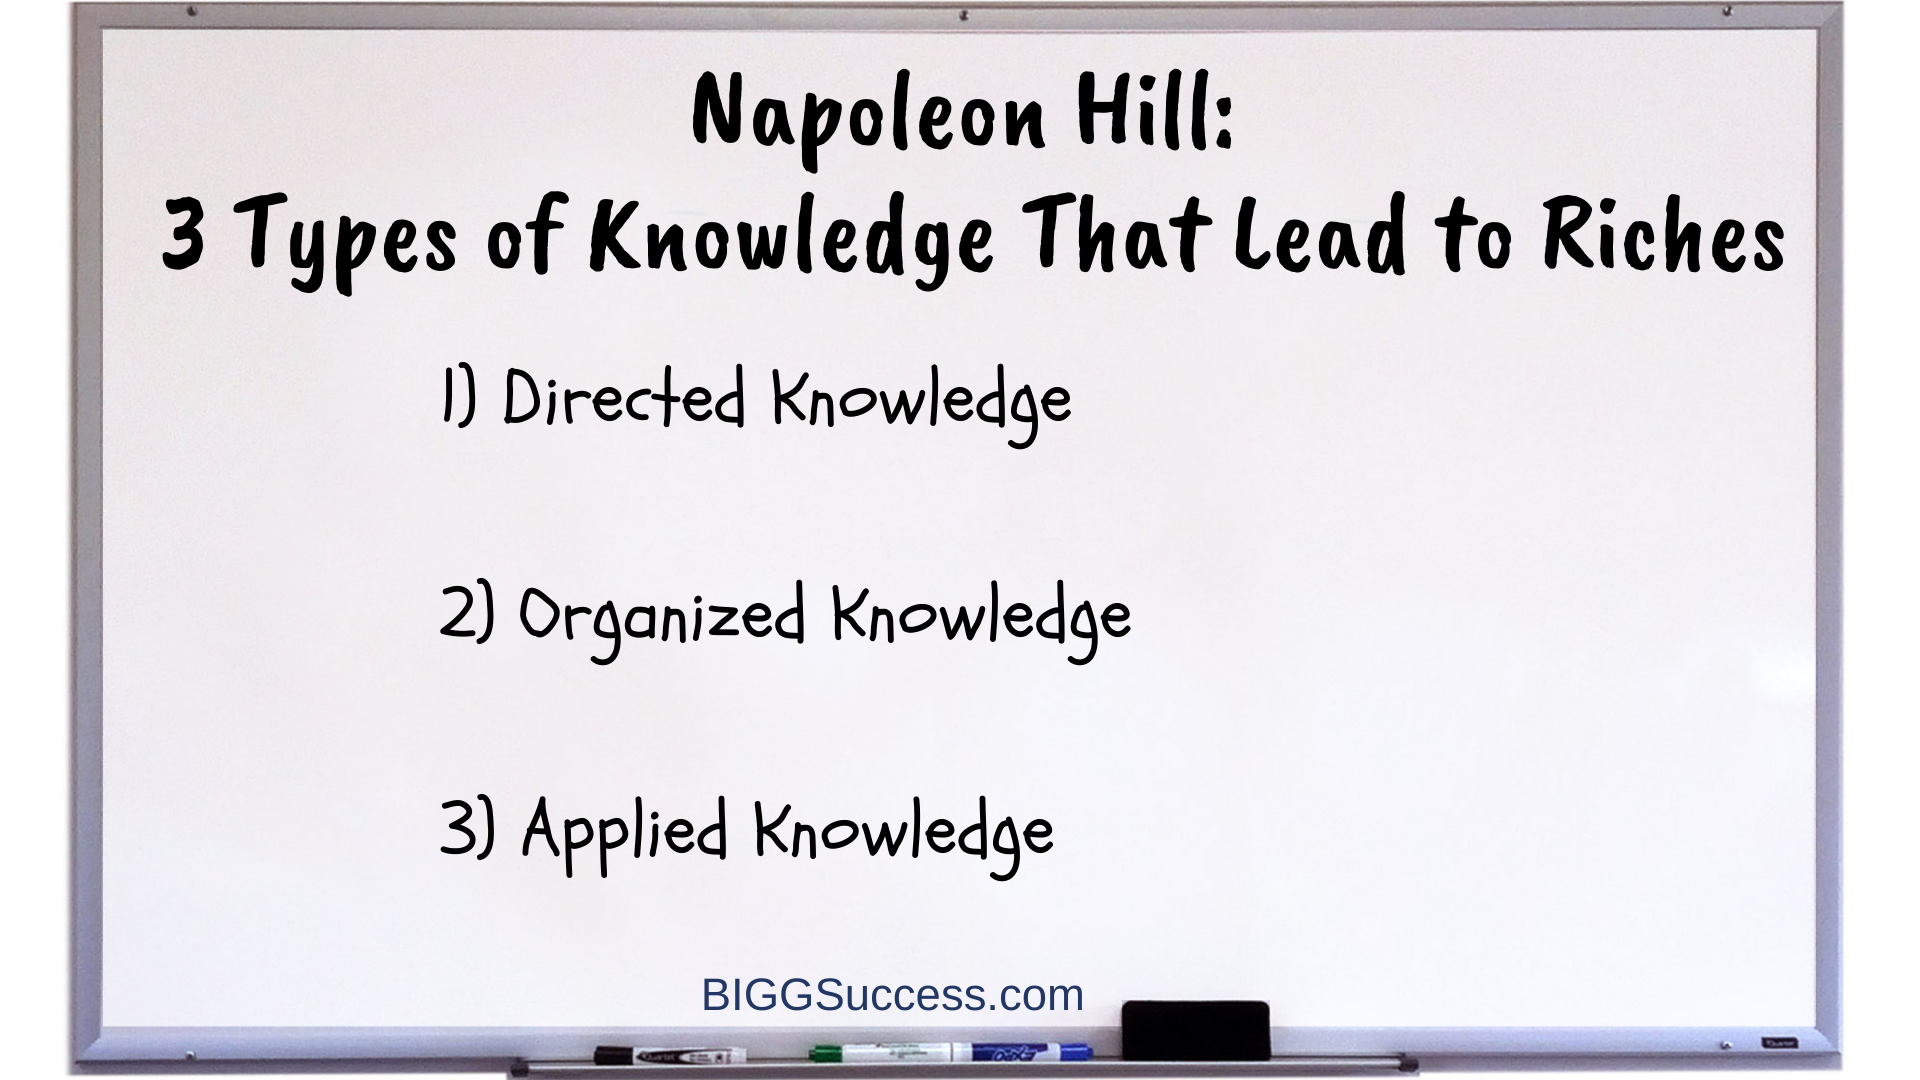 9 Whiteboard 3 Types of Knowledge That Lead to Riches